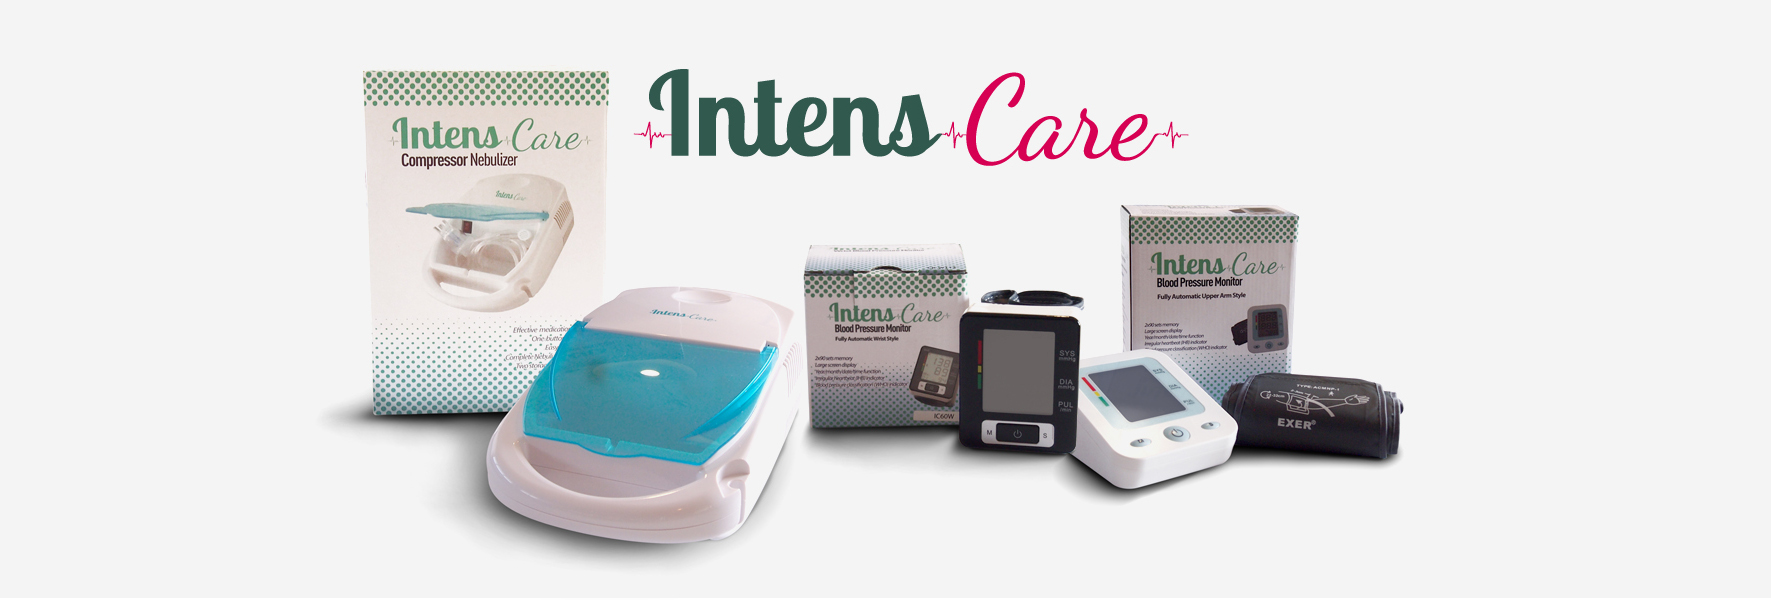 Intense care banner